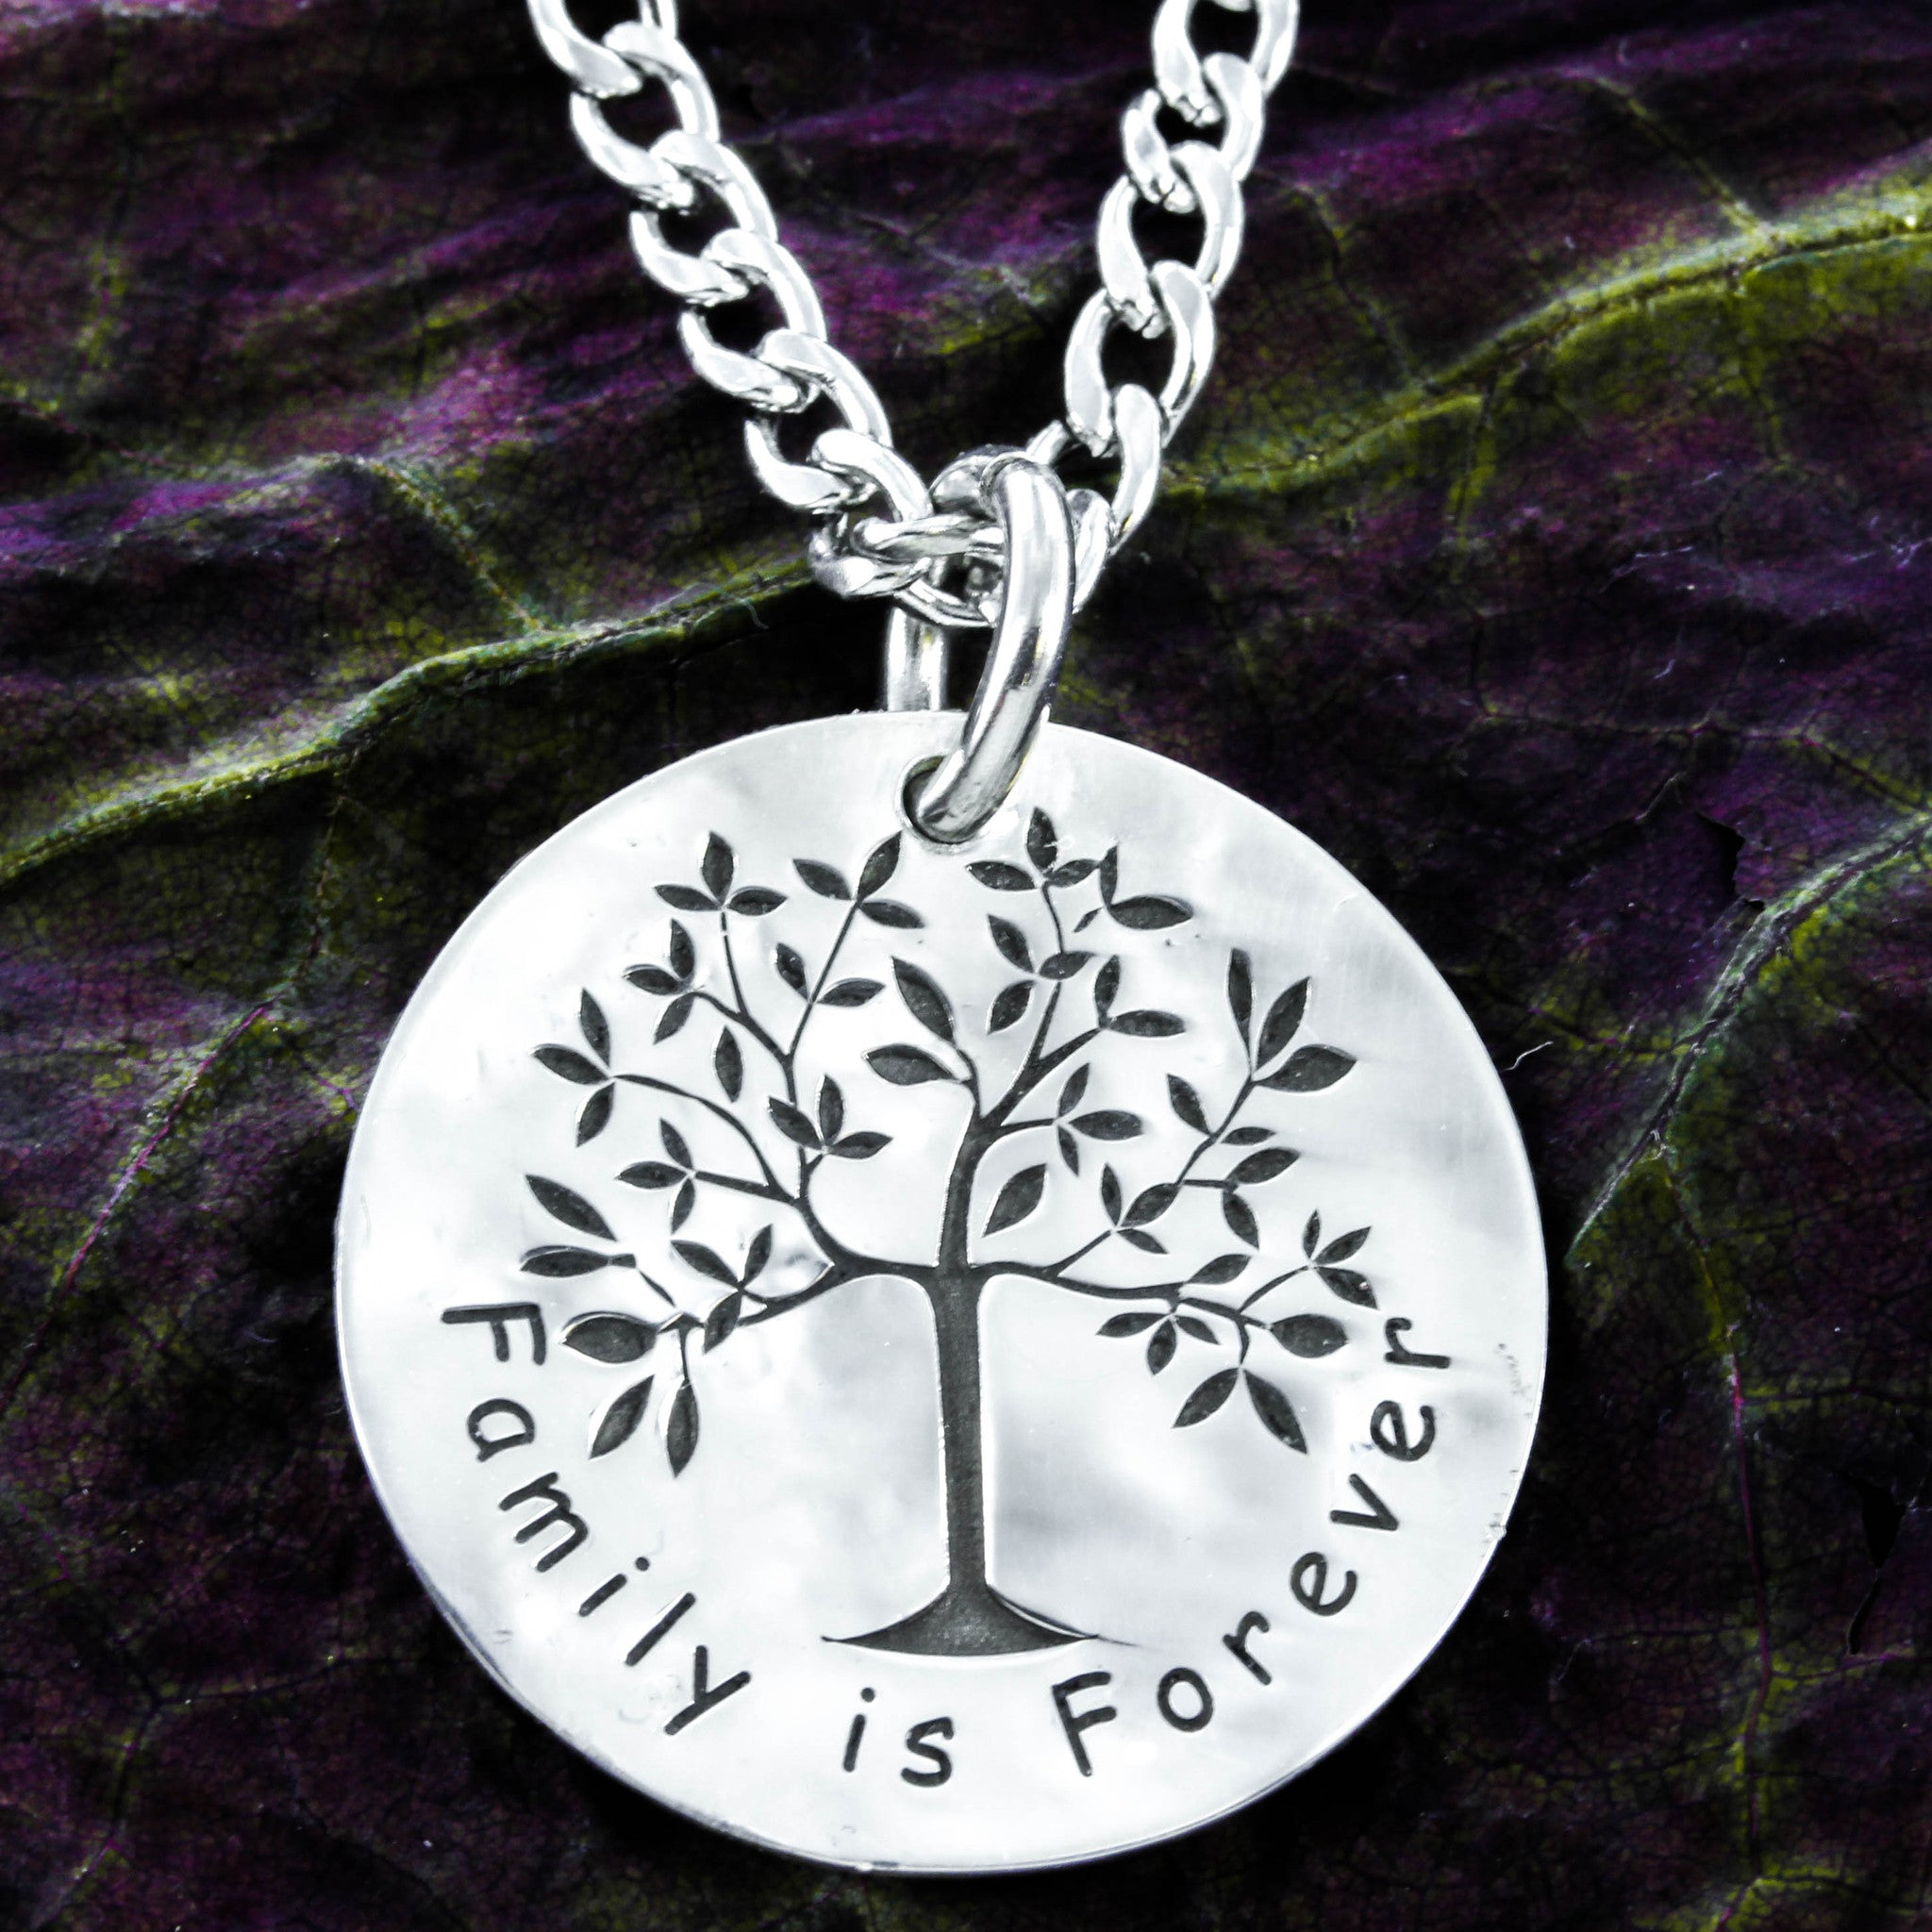 prd family necklace wid product op sharpen tree pendant sterling silver jsp timeless hei